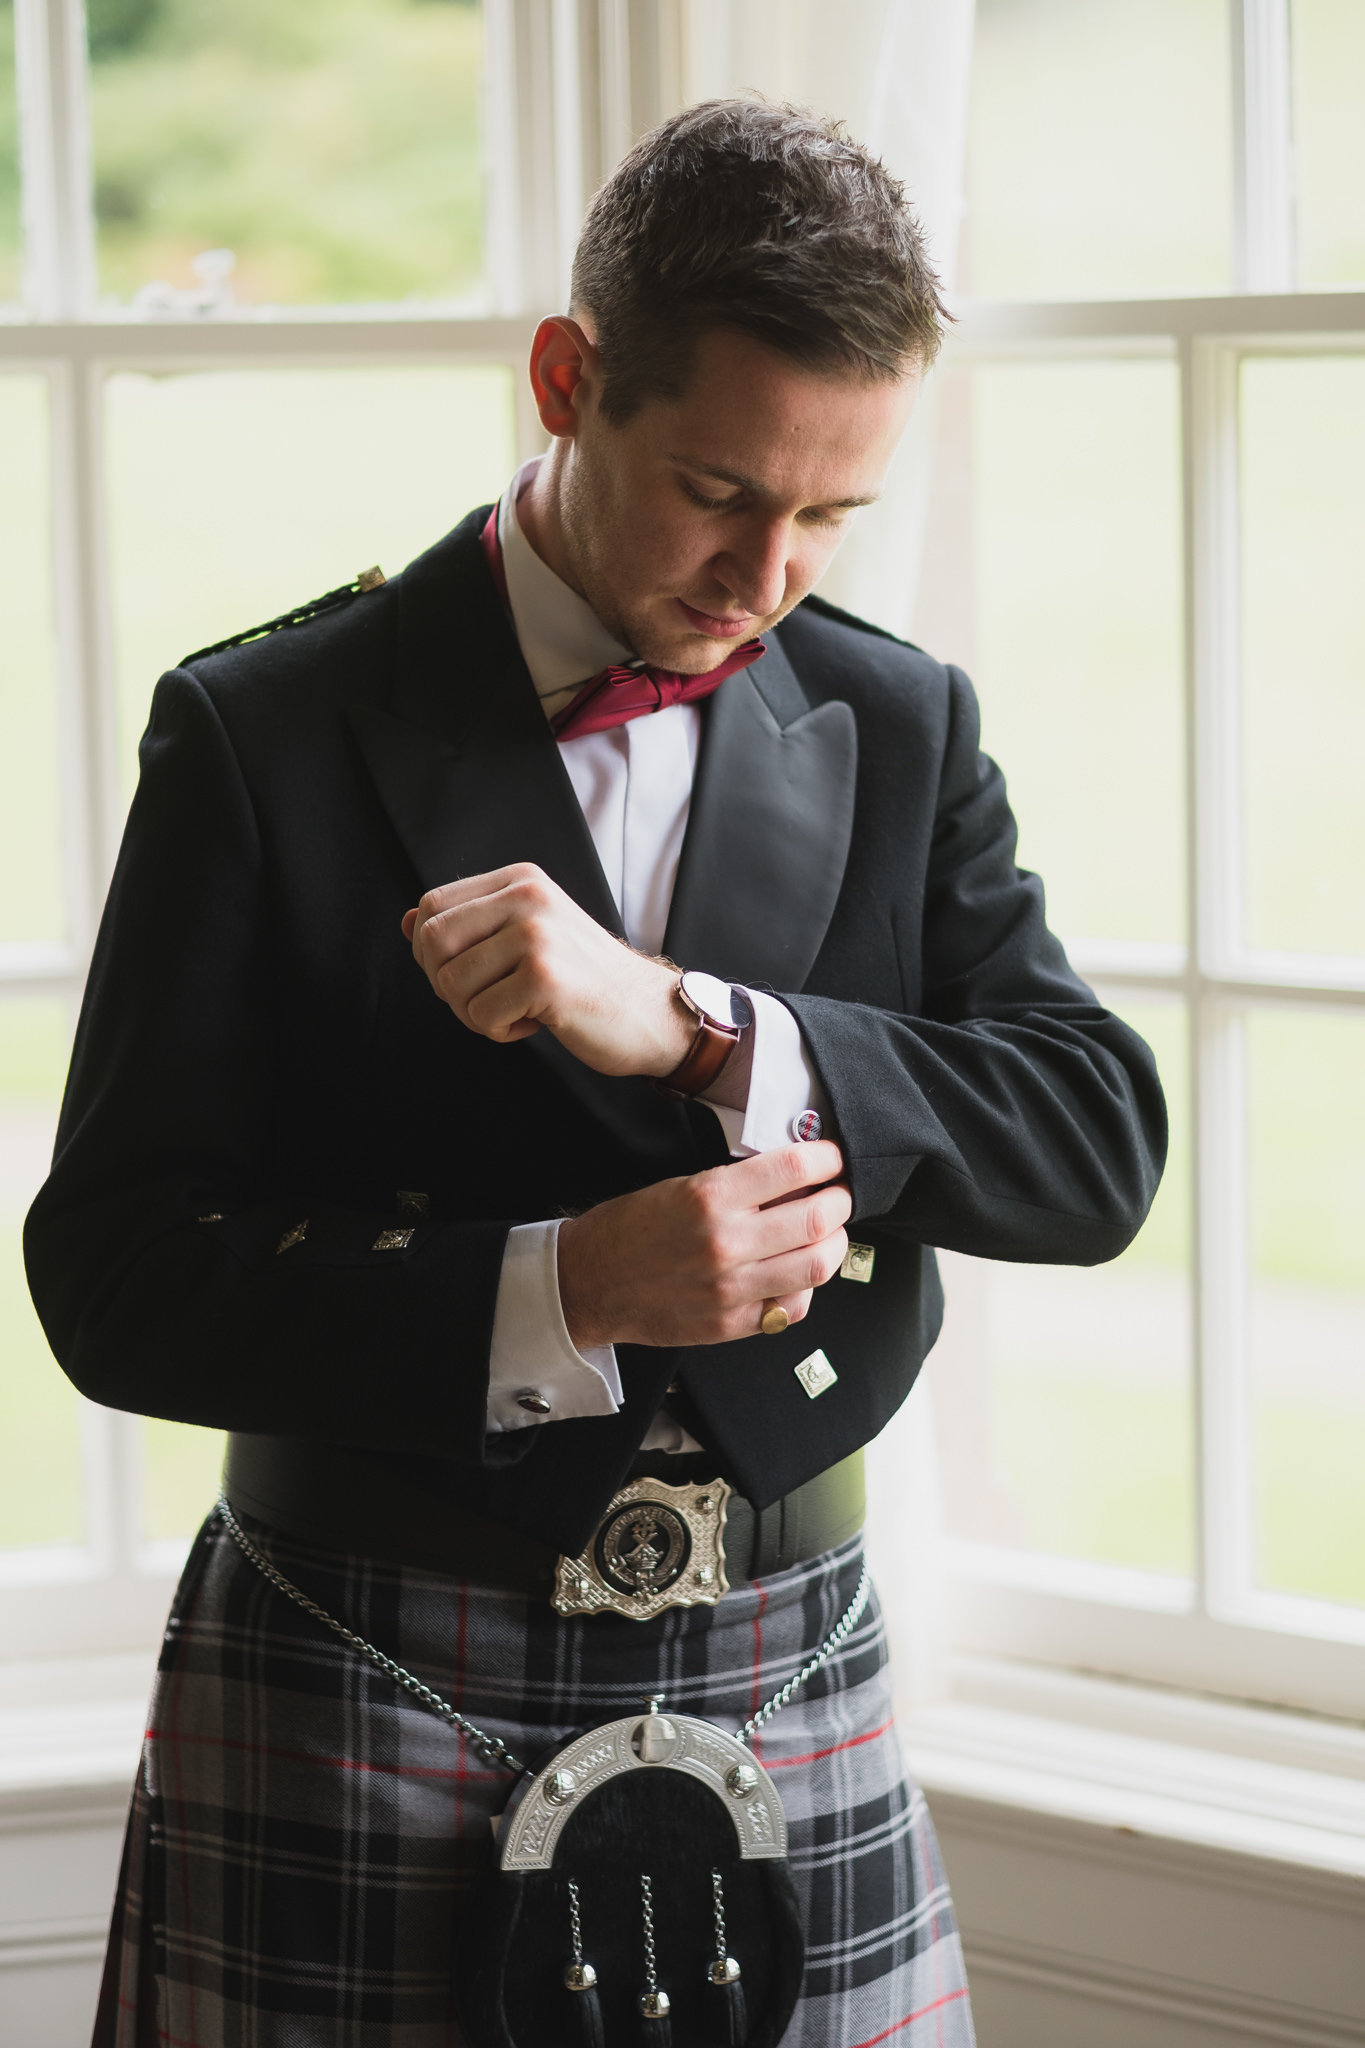 Glasgow wedding photographer-3-2